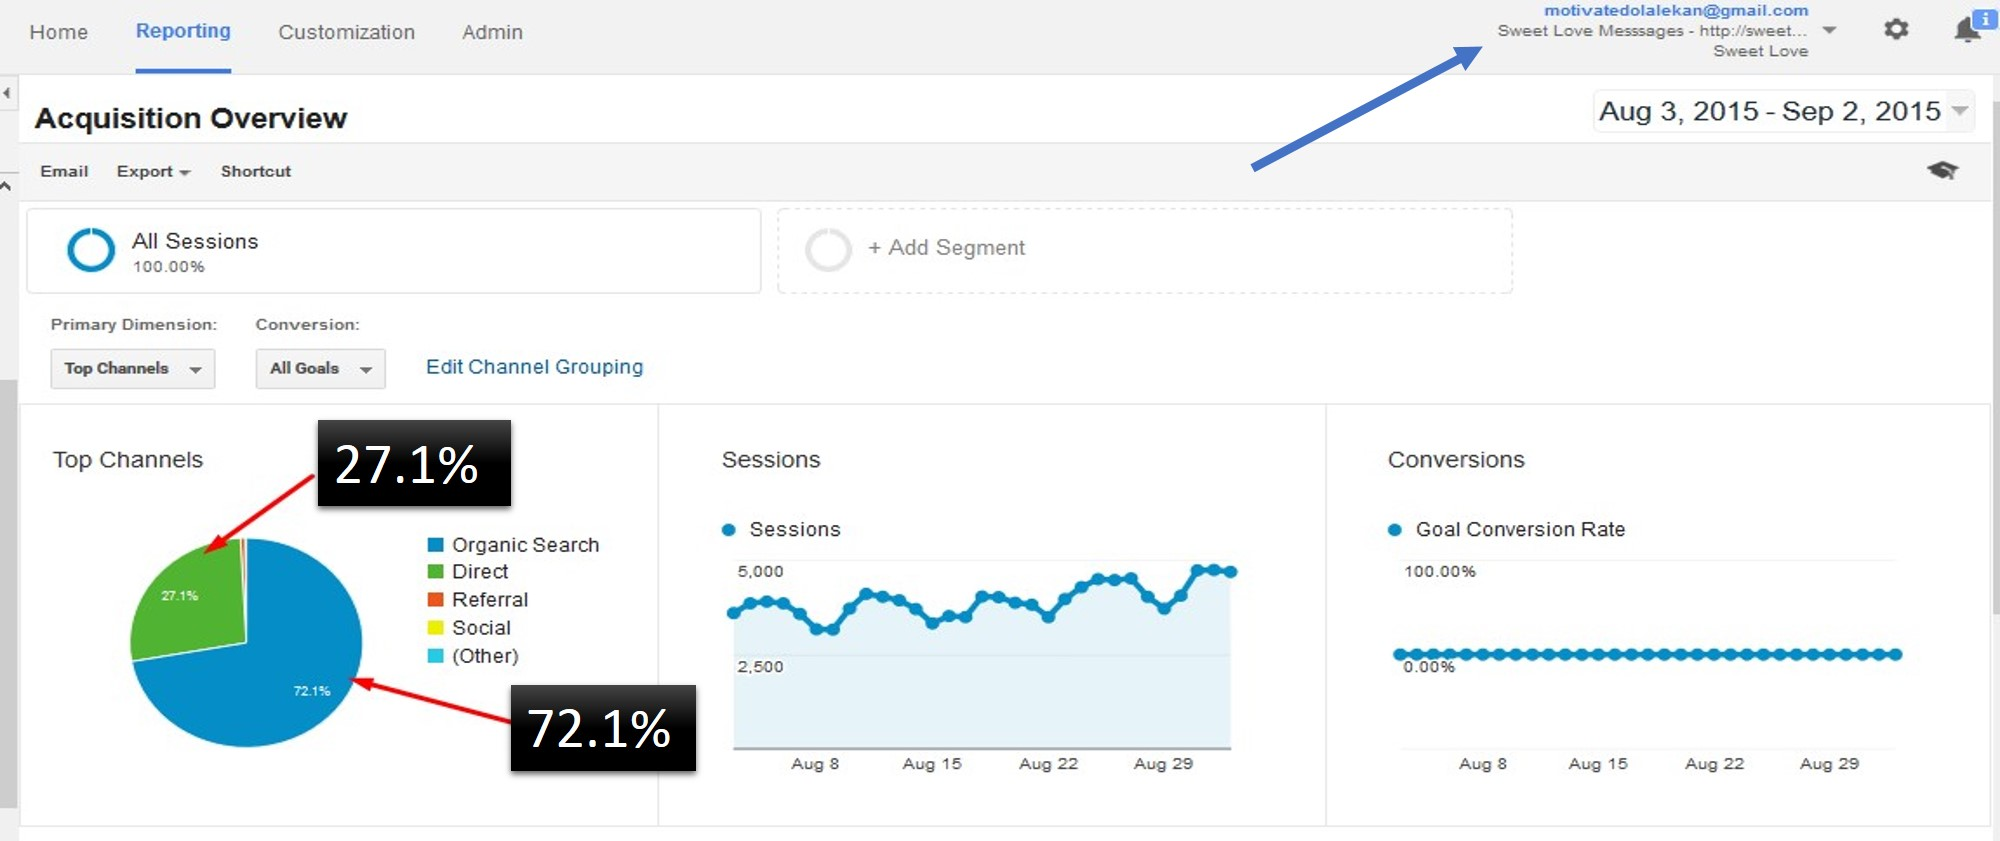 how to get google adsense approval for my blog